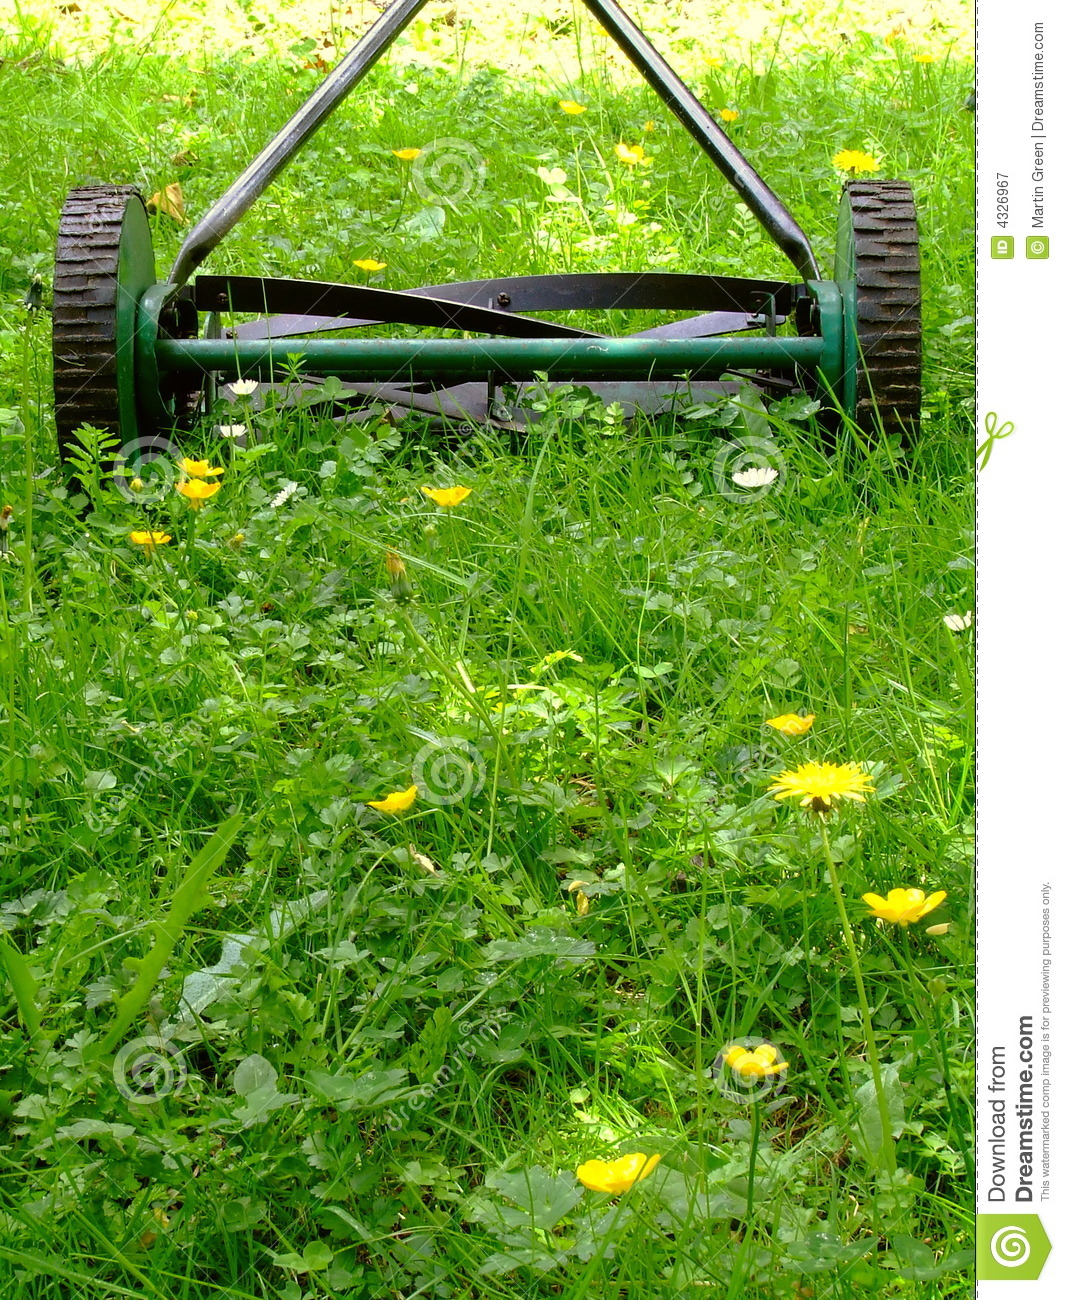 how to cut long grass by hand